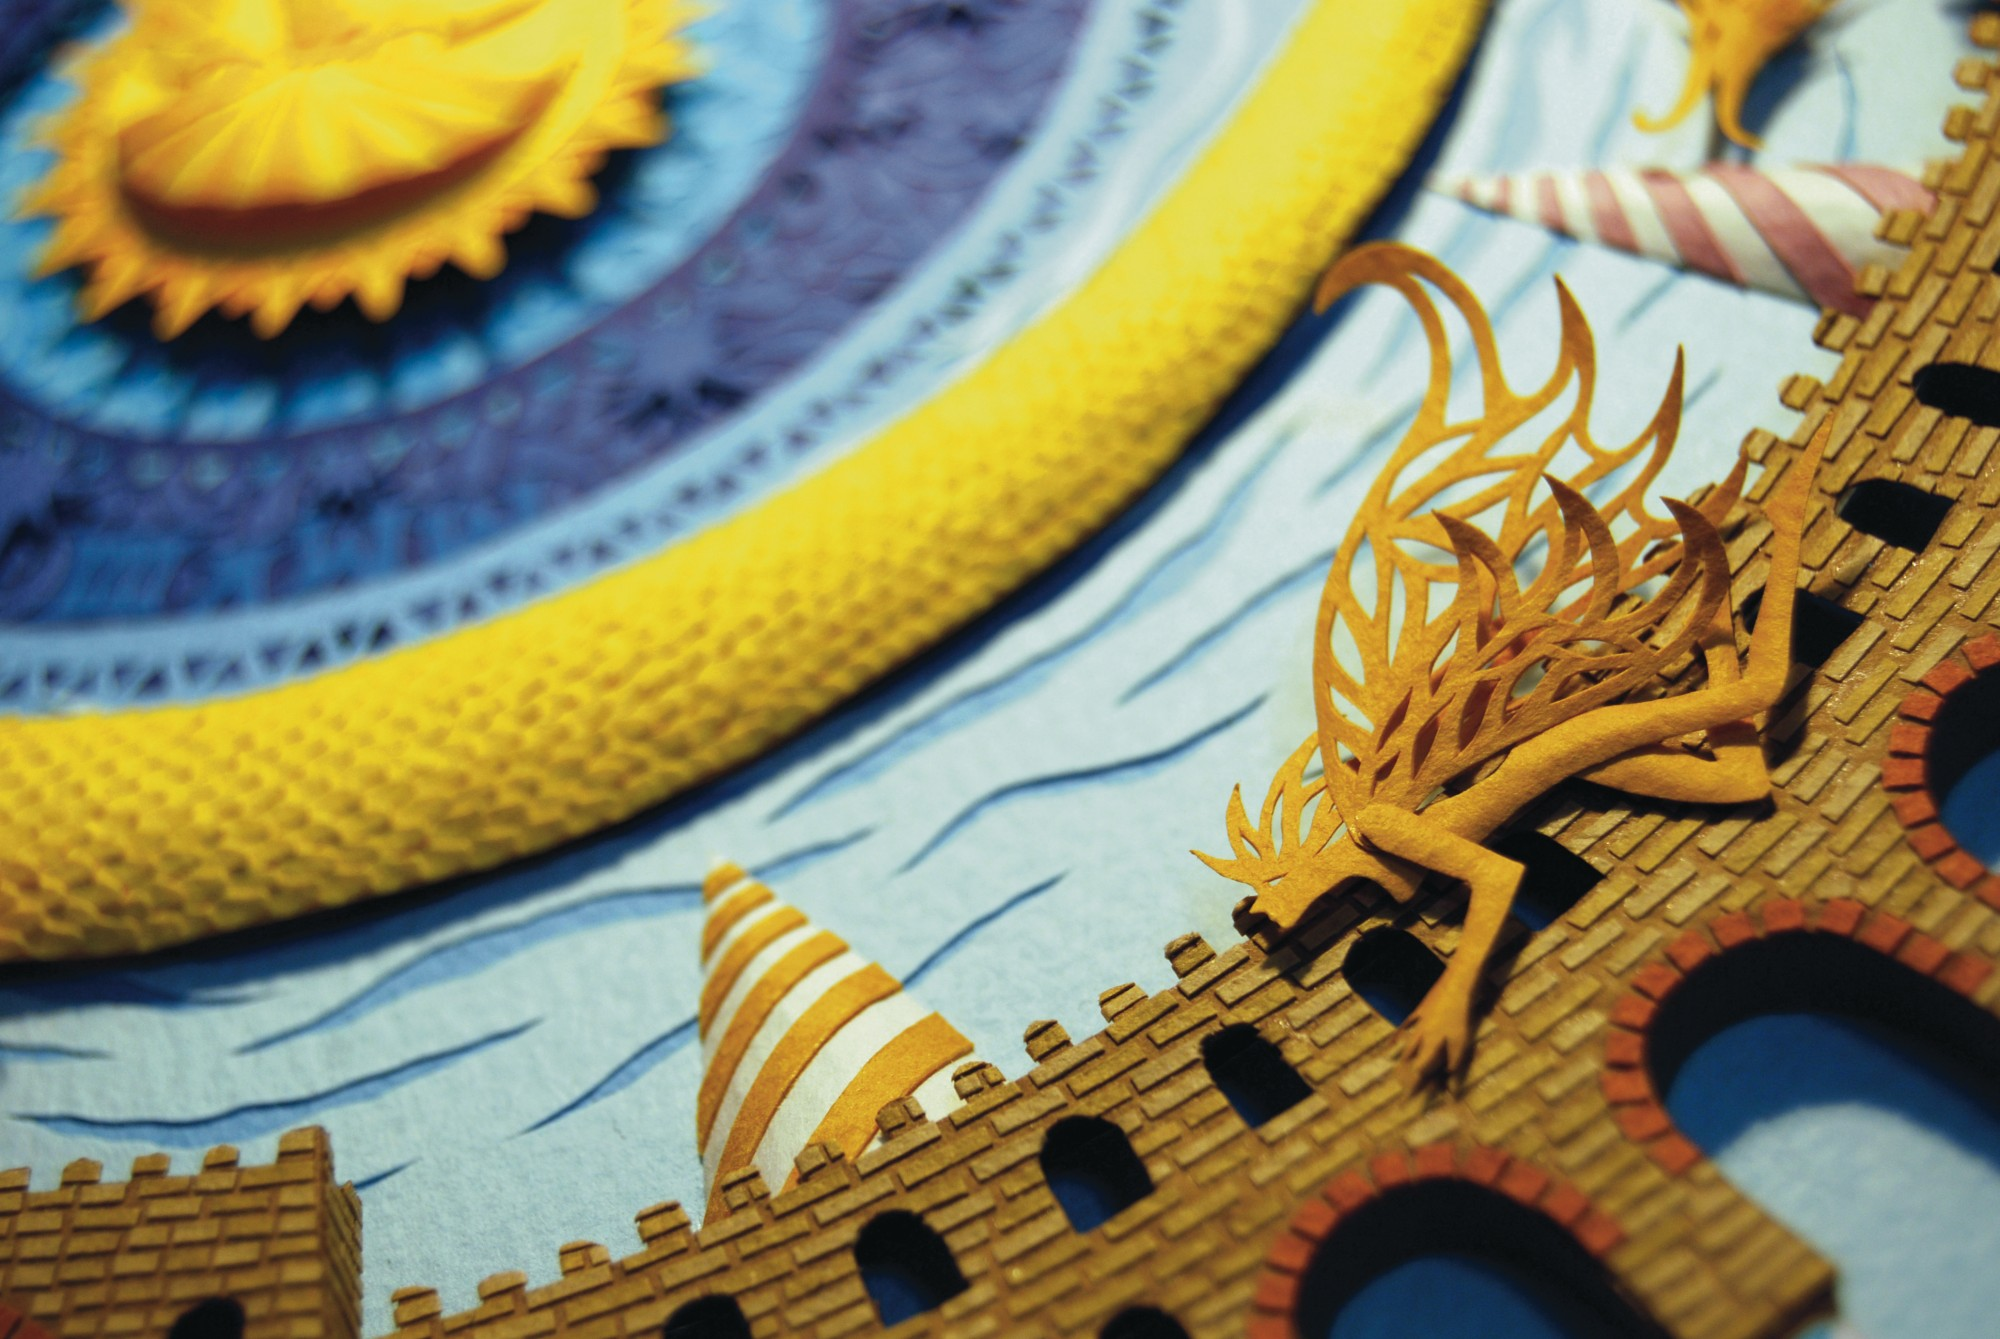 Marcelo Kato Creates Colorful Mediterranean Sea Inspired Cut Paper Illustrations - Golden Dragon